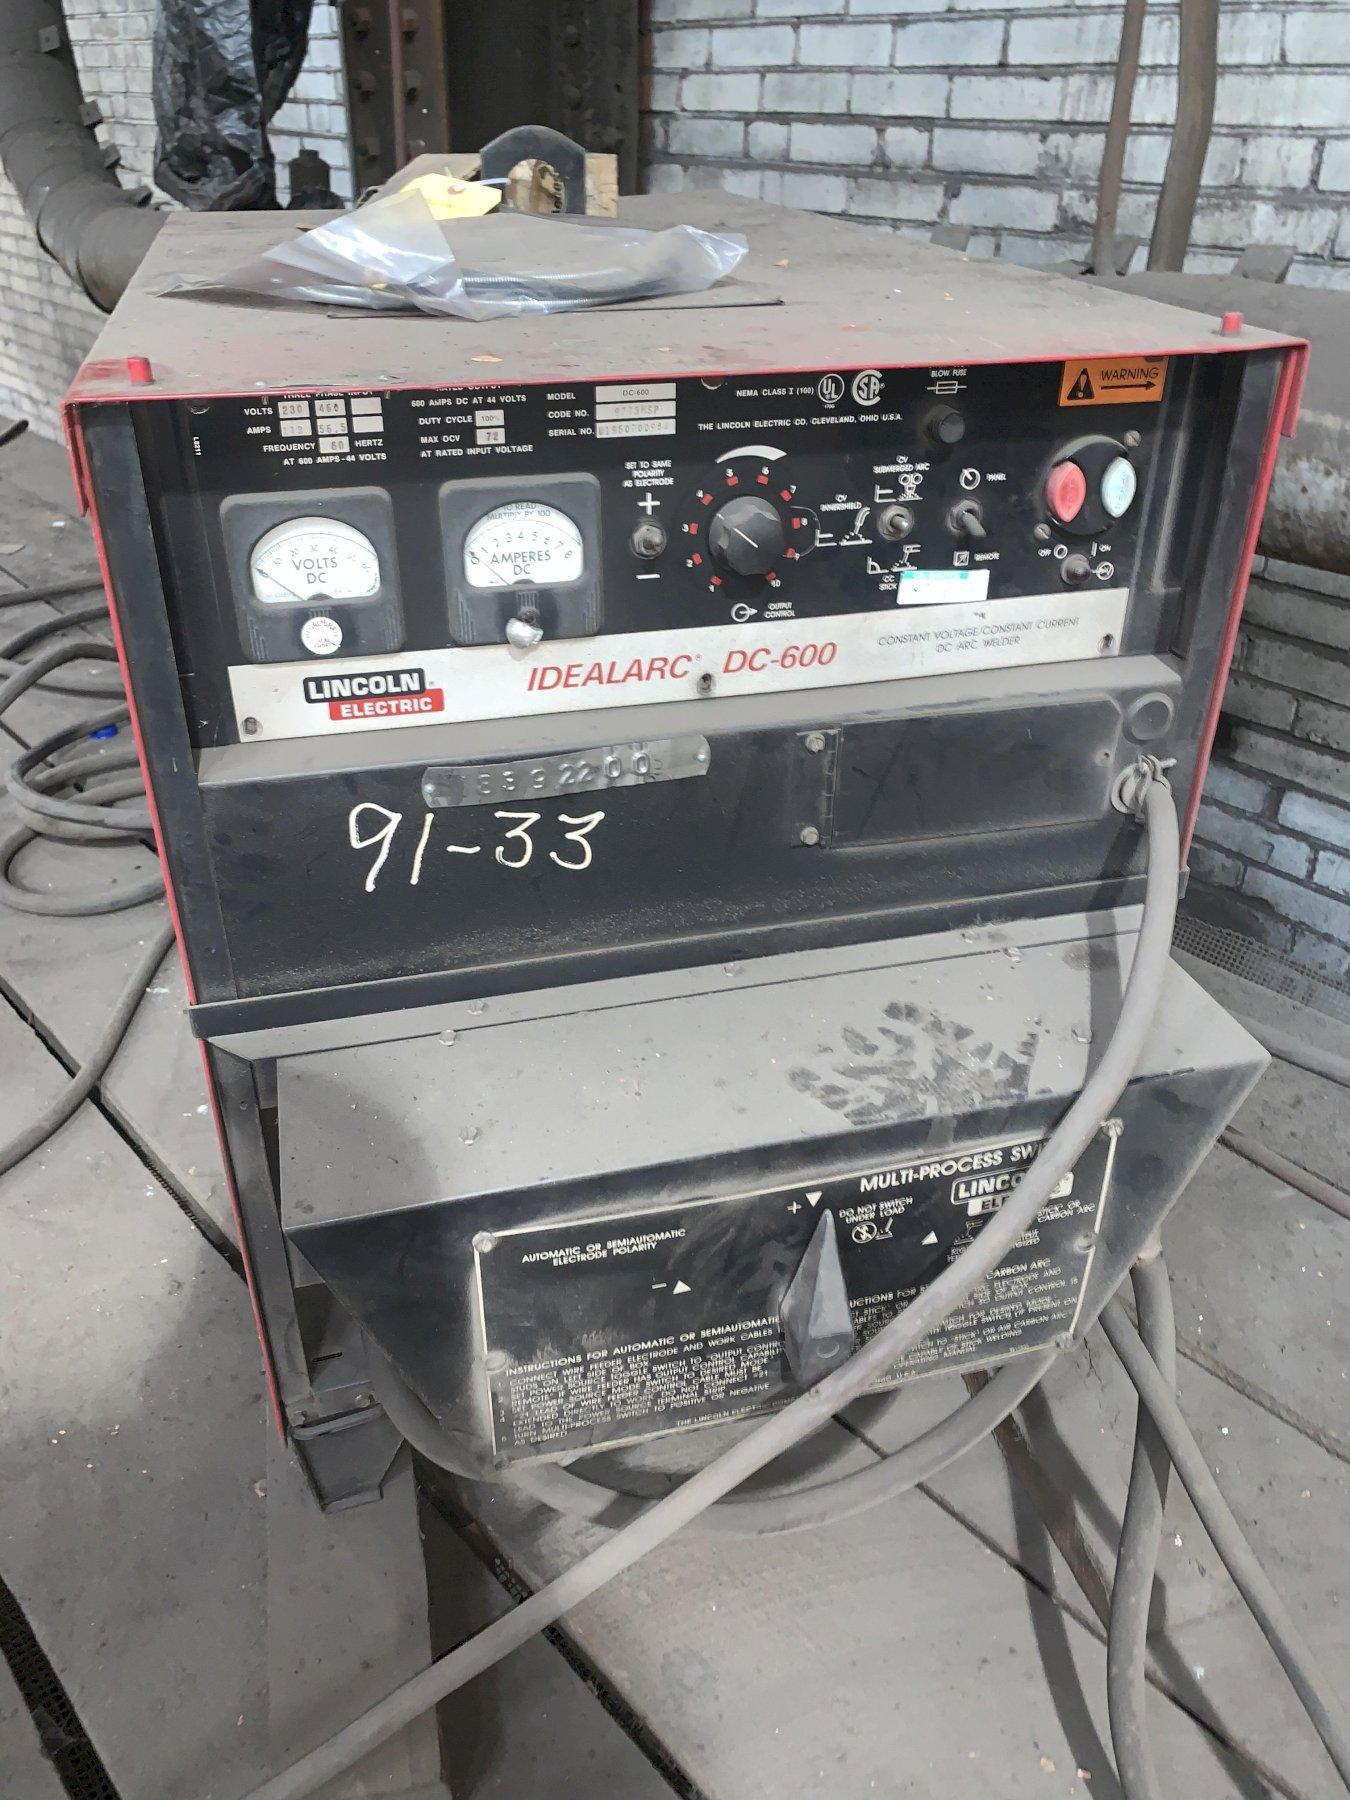 LINCOLN ELECTRIC IDEALARC DC-600 ARC WELDER WITH SWITCH: STOCK #13673